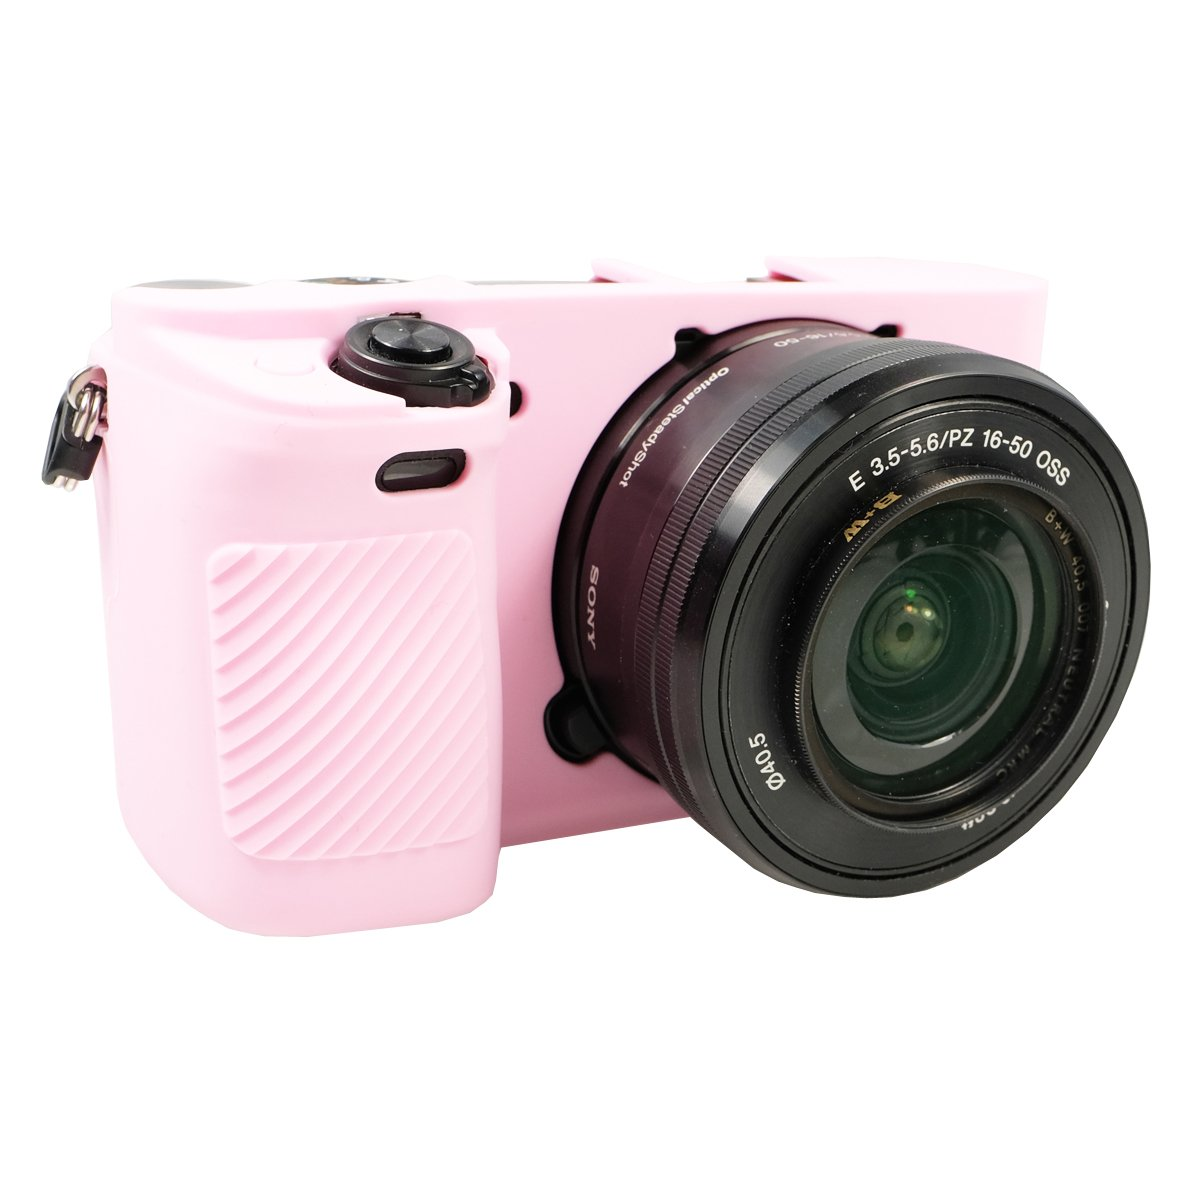 PhotoTrust Pink Silicone Case Soft Protective Skin For Sony Alpha A6300 A6000 Fits All Lens